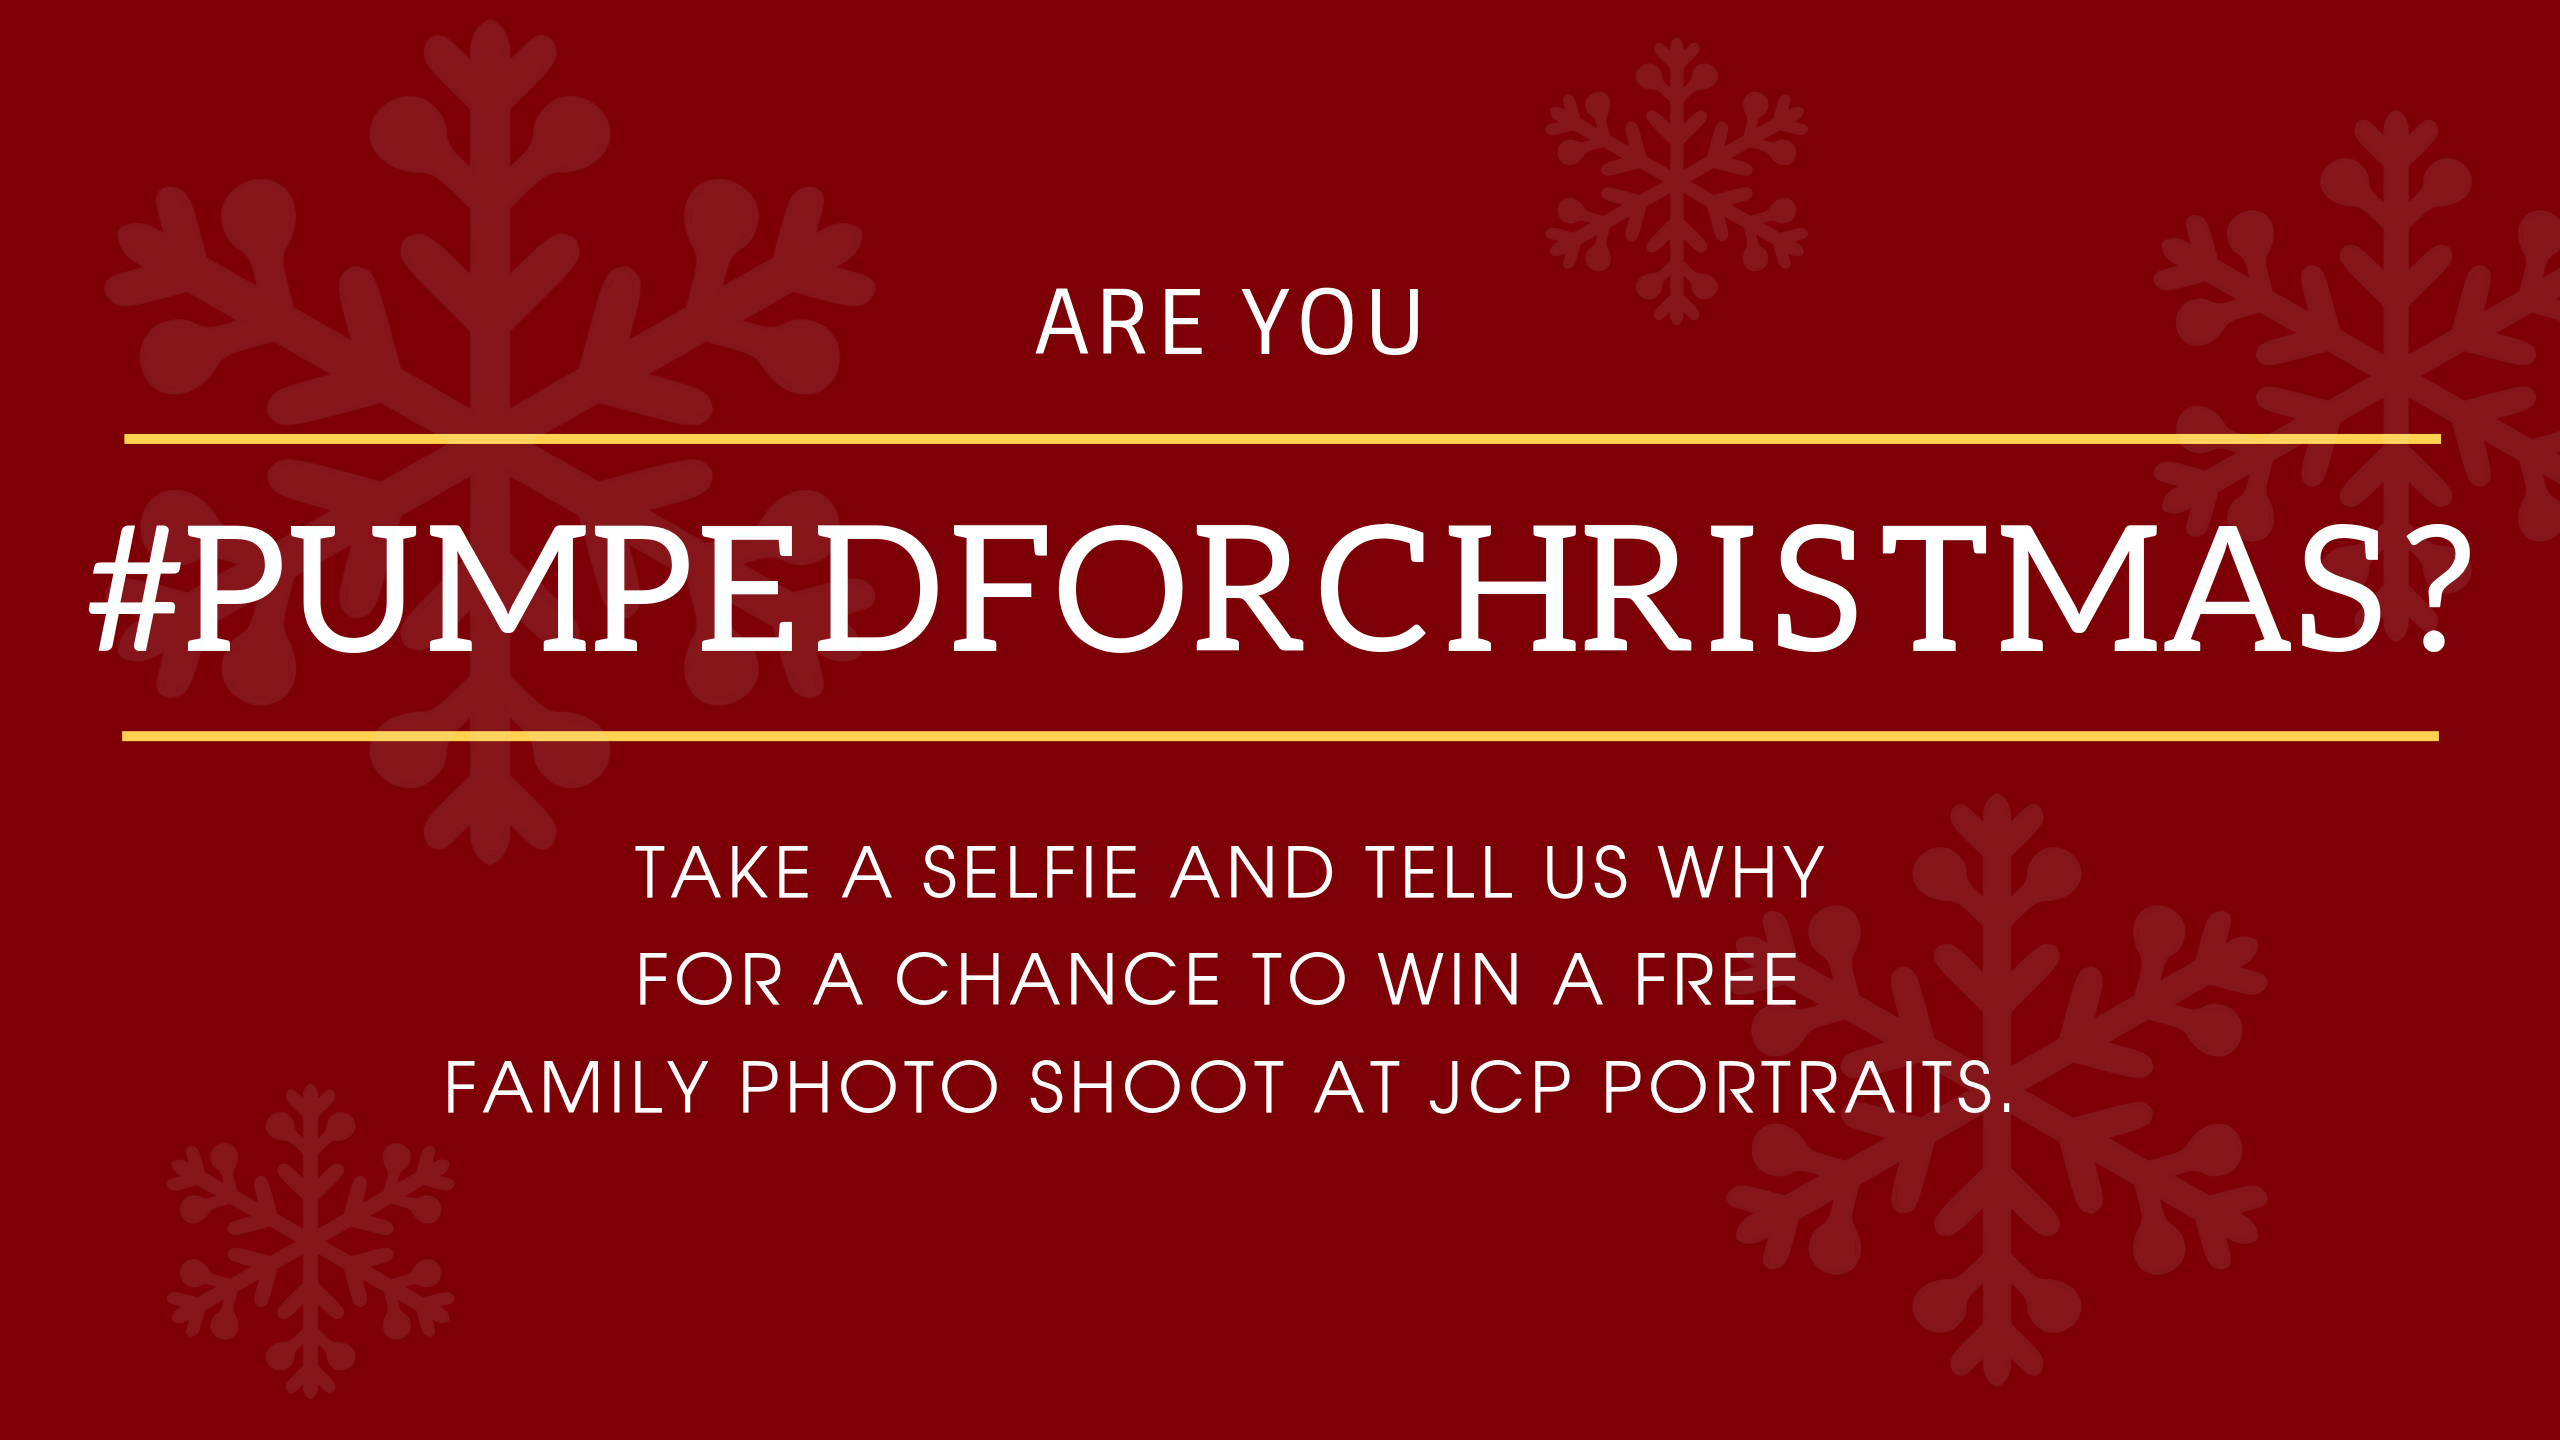 Show us you are #PumpedForChristmas and win a family photo shoot!